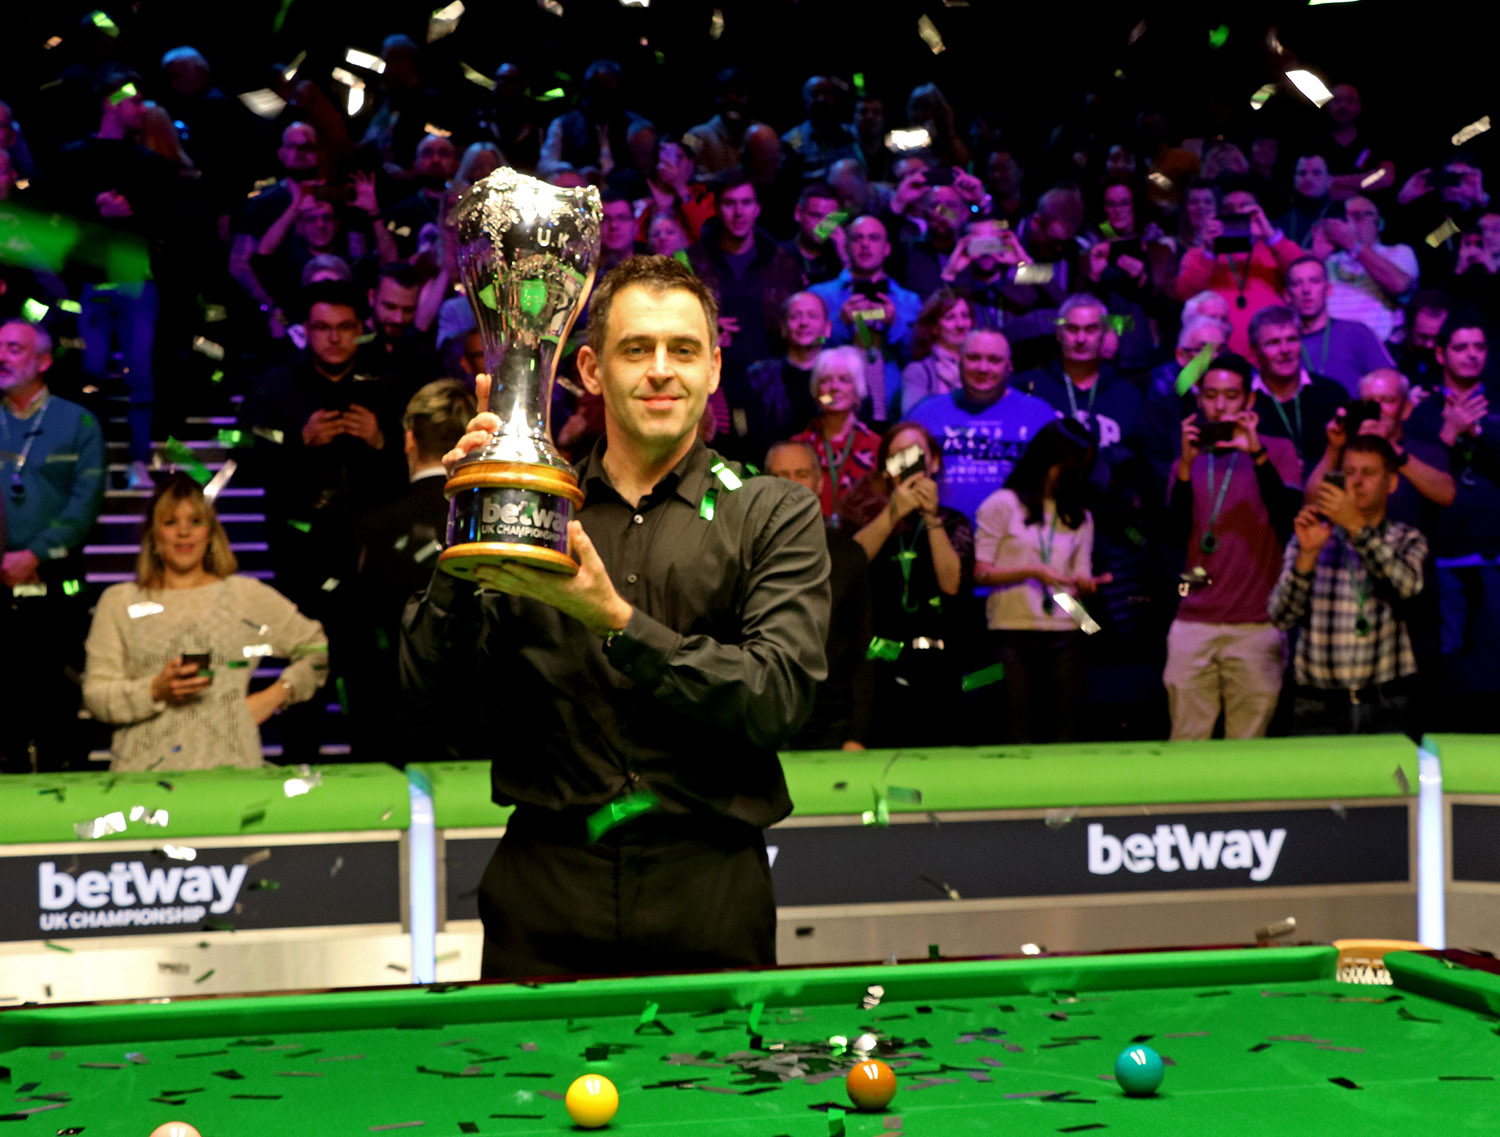 Ronnie O'Sullivan lifts the trophy as he defeats Mark Allen 10-6 in the final of the snooker Betway UK Championship 2018